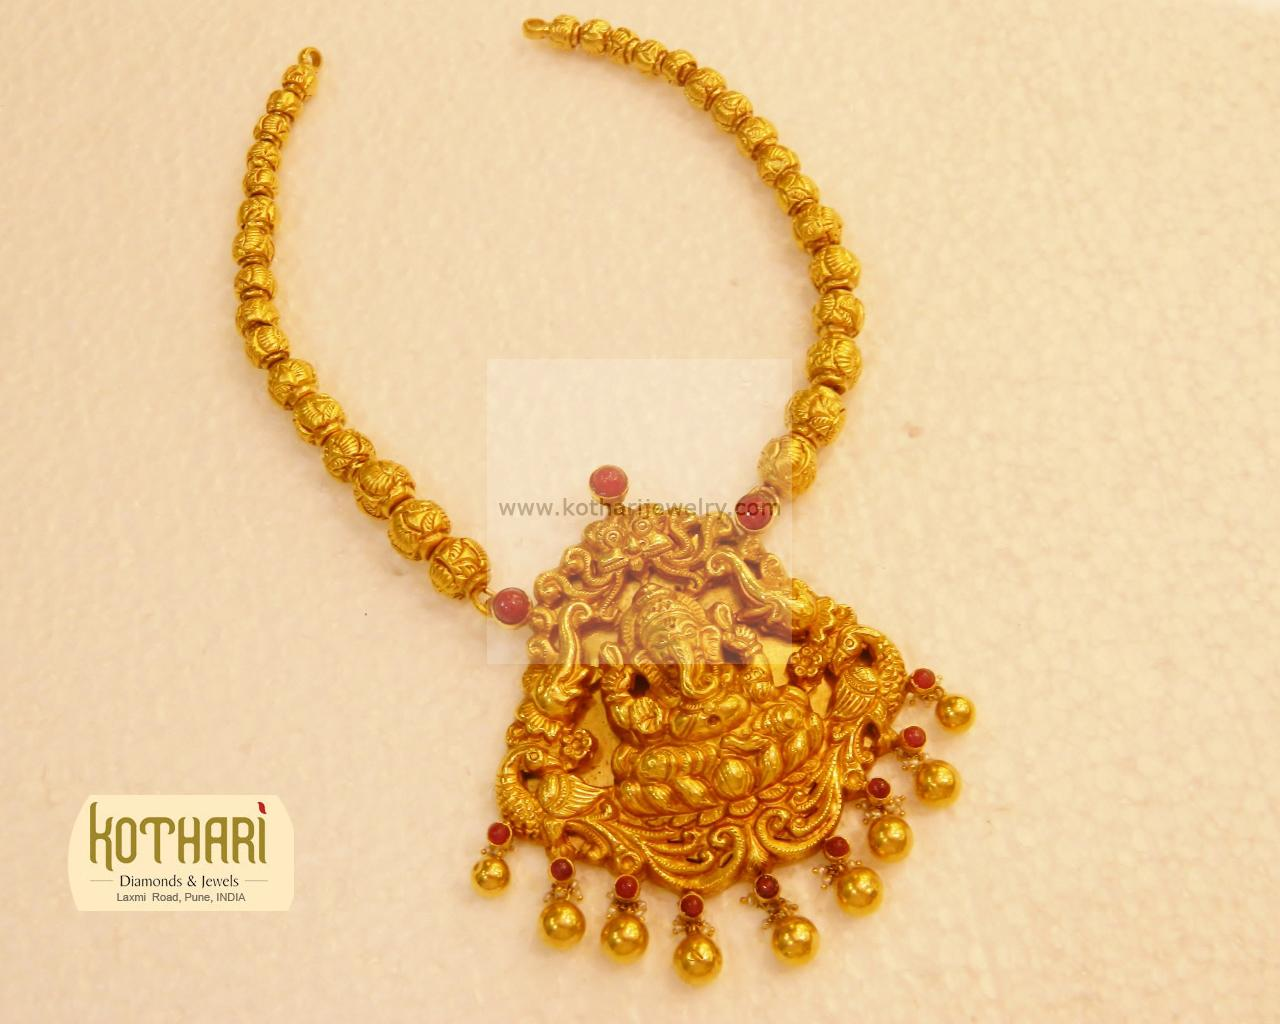 Necklaces / Harams - Gold Jewellery Necklaces / Harams (NK54935493 ...